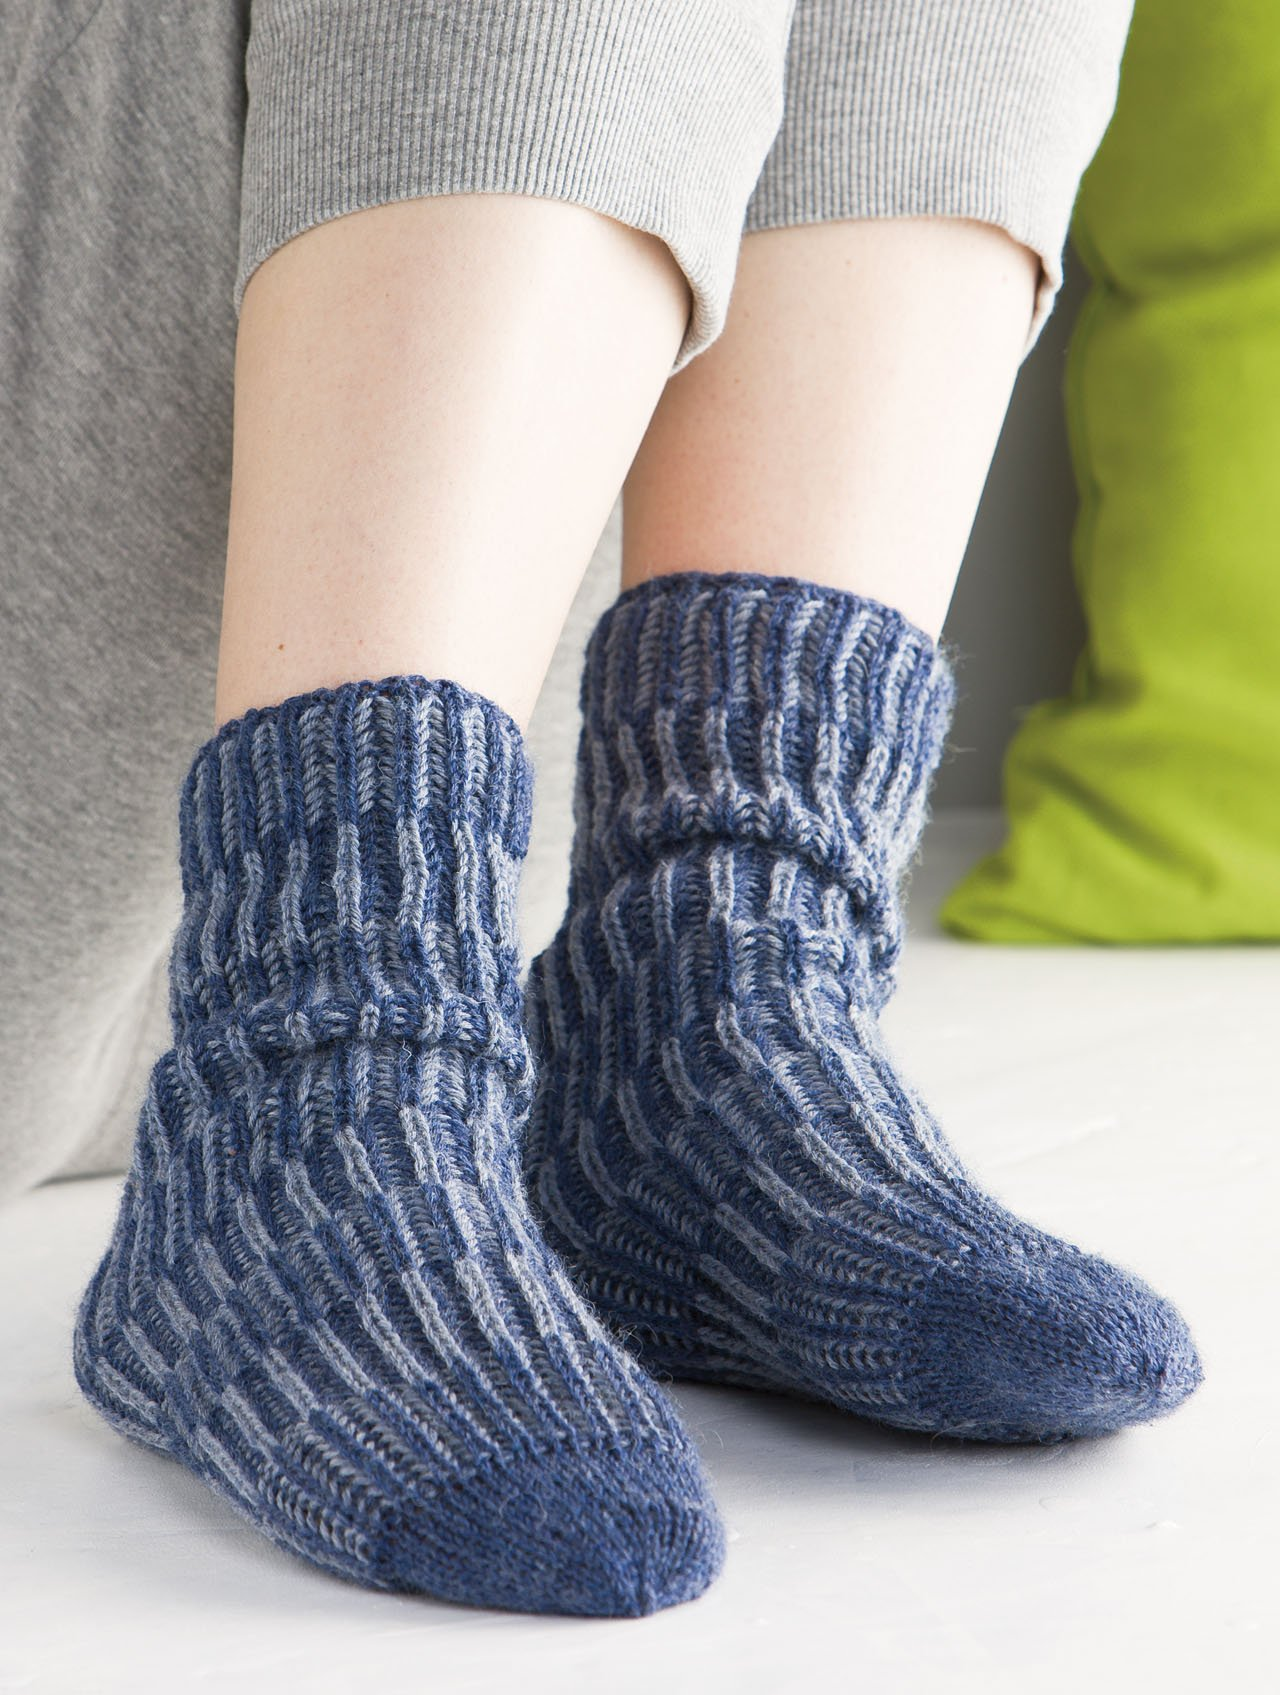 Knitting Brioche-Stitch Socks: 14 Easy Patterns for Tube Socks